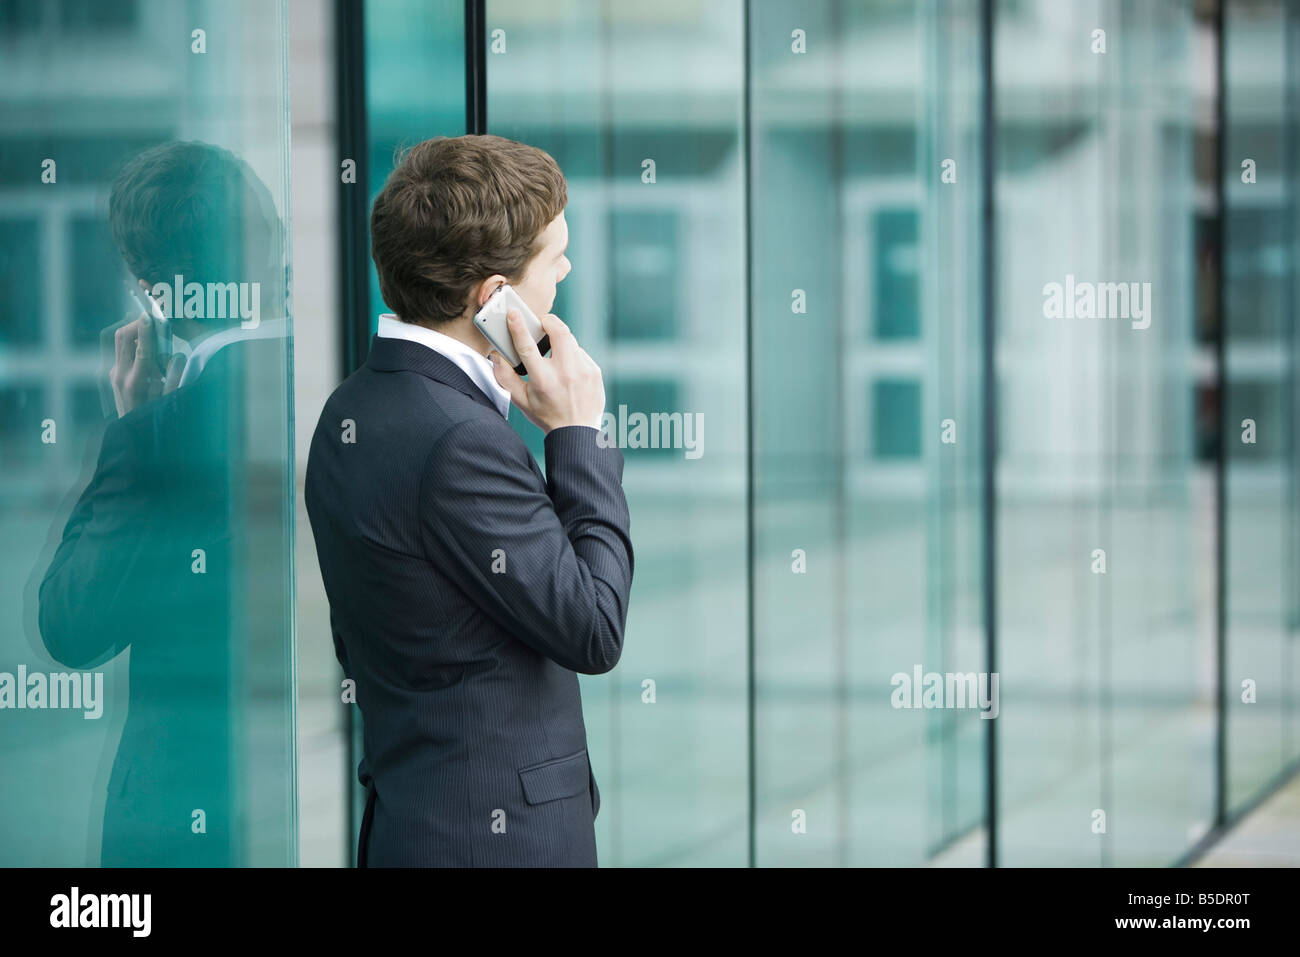 Young businessman standing outside sliding glass doors talking on cell phone - Stock Image